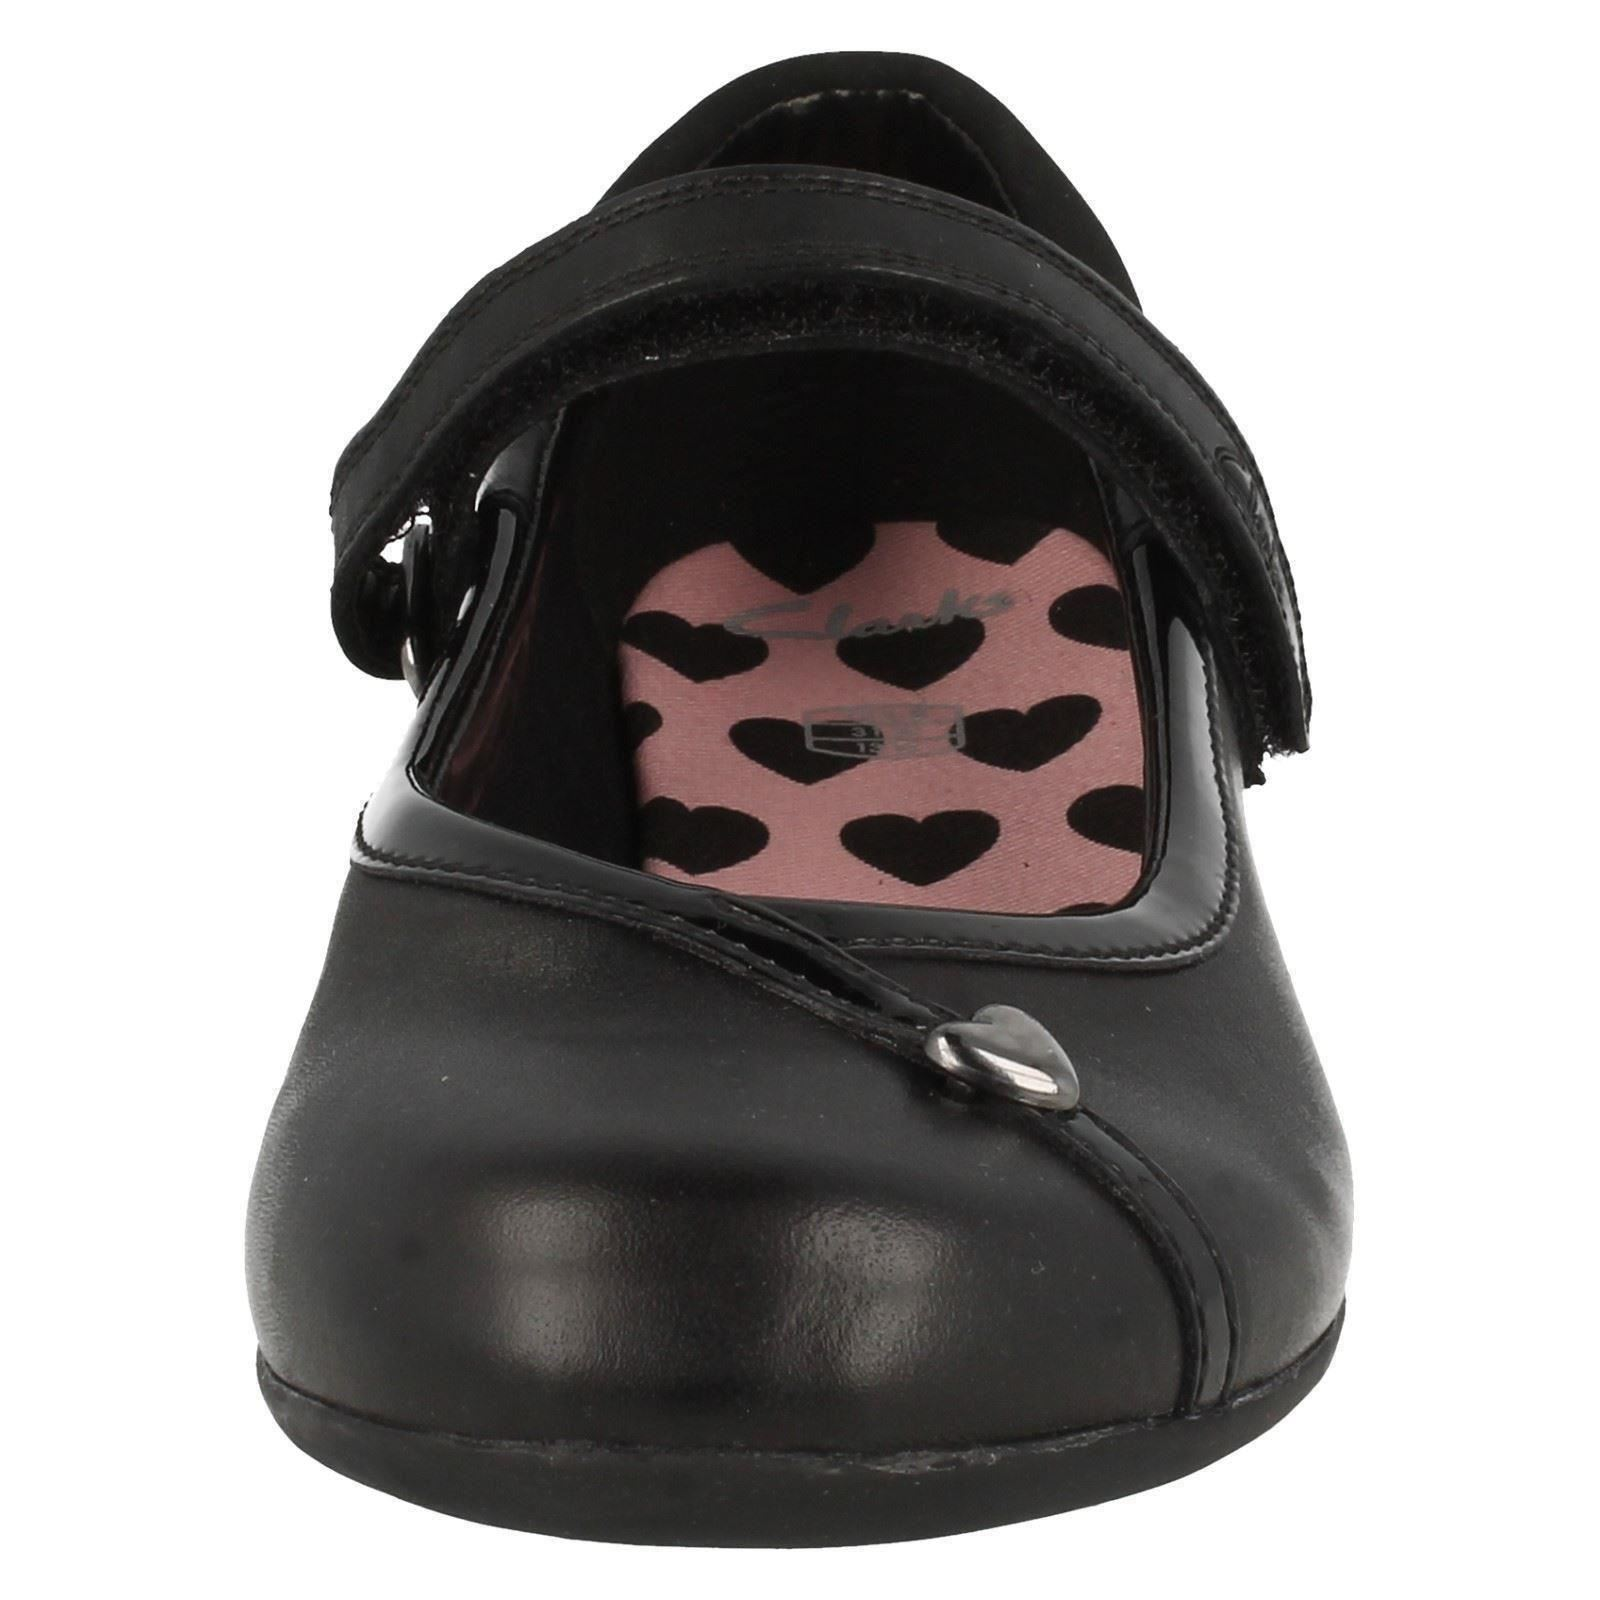 Girls Clarks Smart School Shoes Movello Lo Clothes, Shoes & Accessories